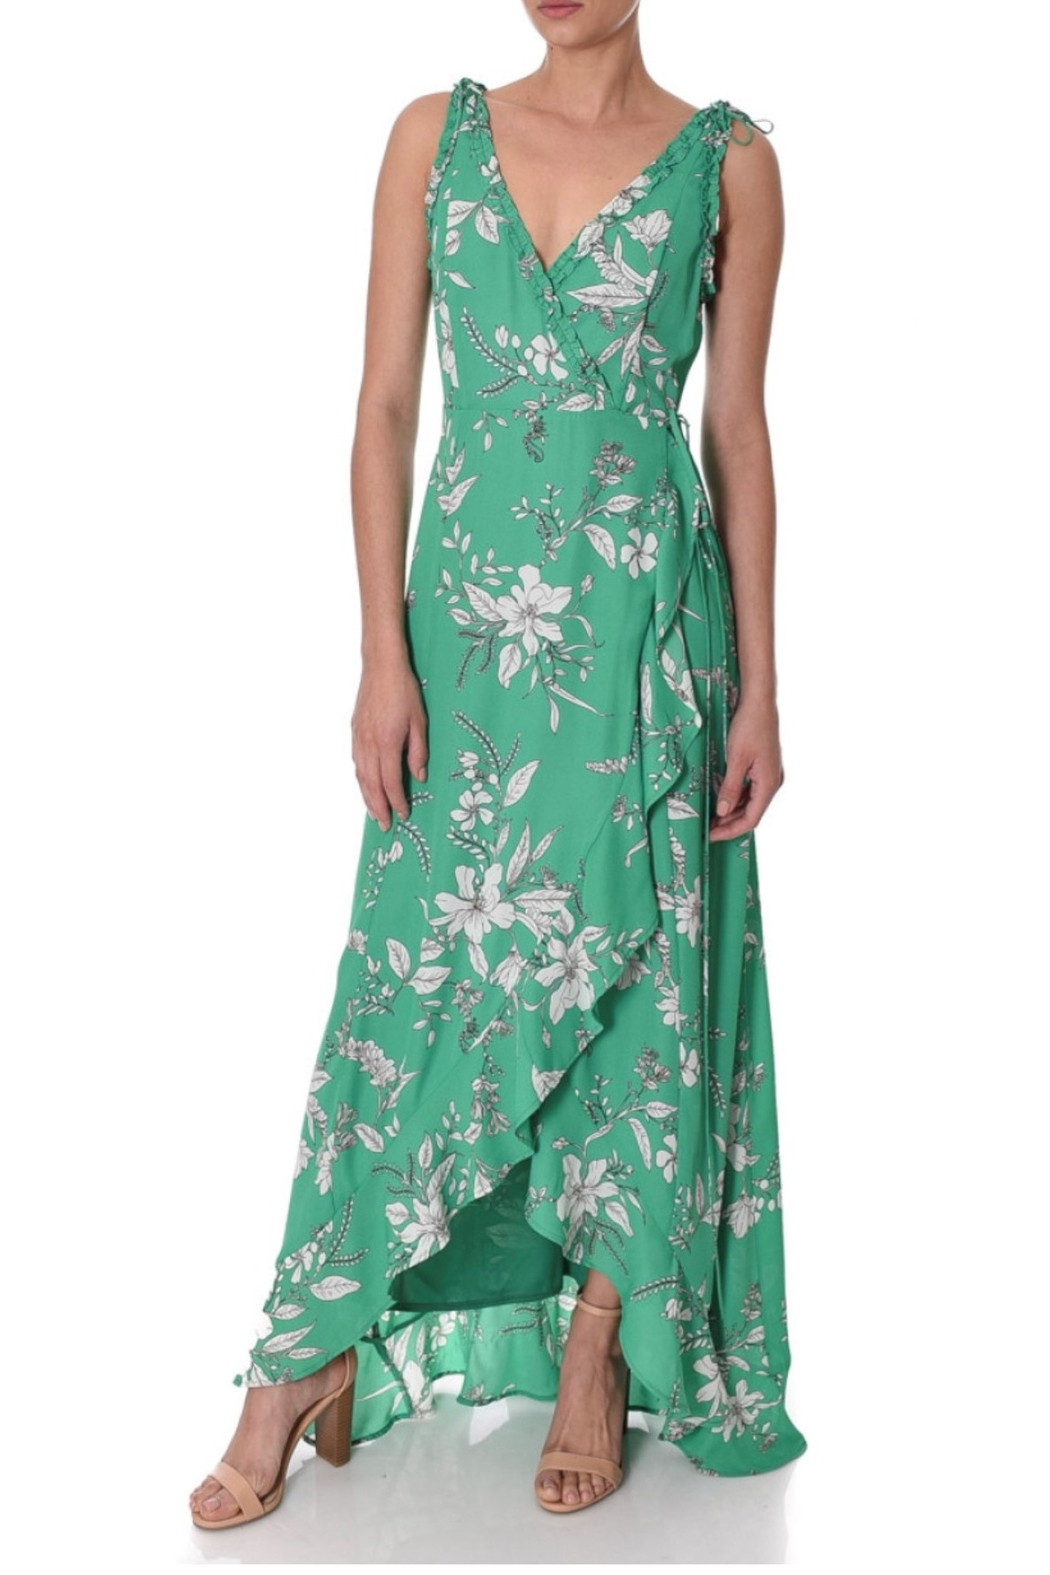 If By Sea Floral Maxi Dress - Front Cropped Image